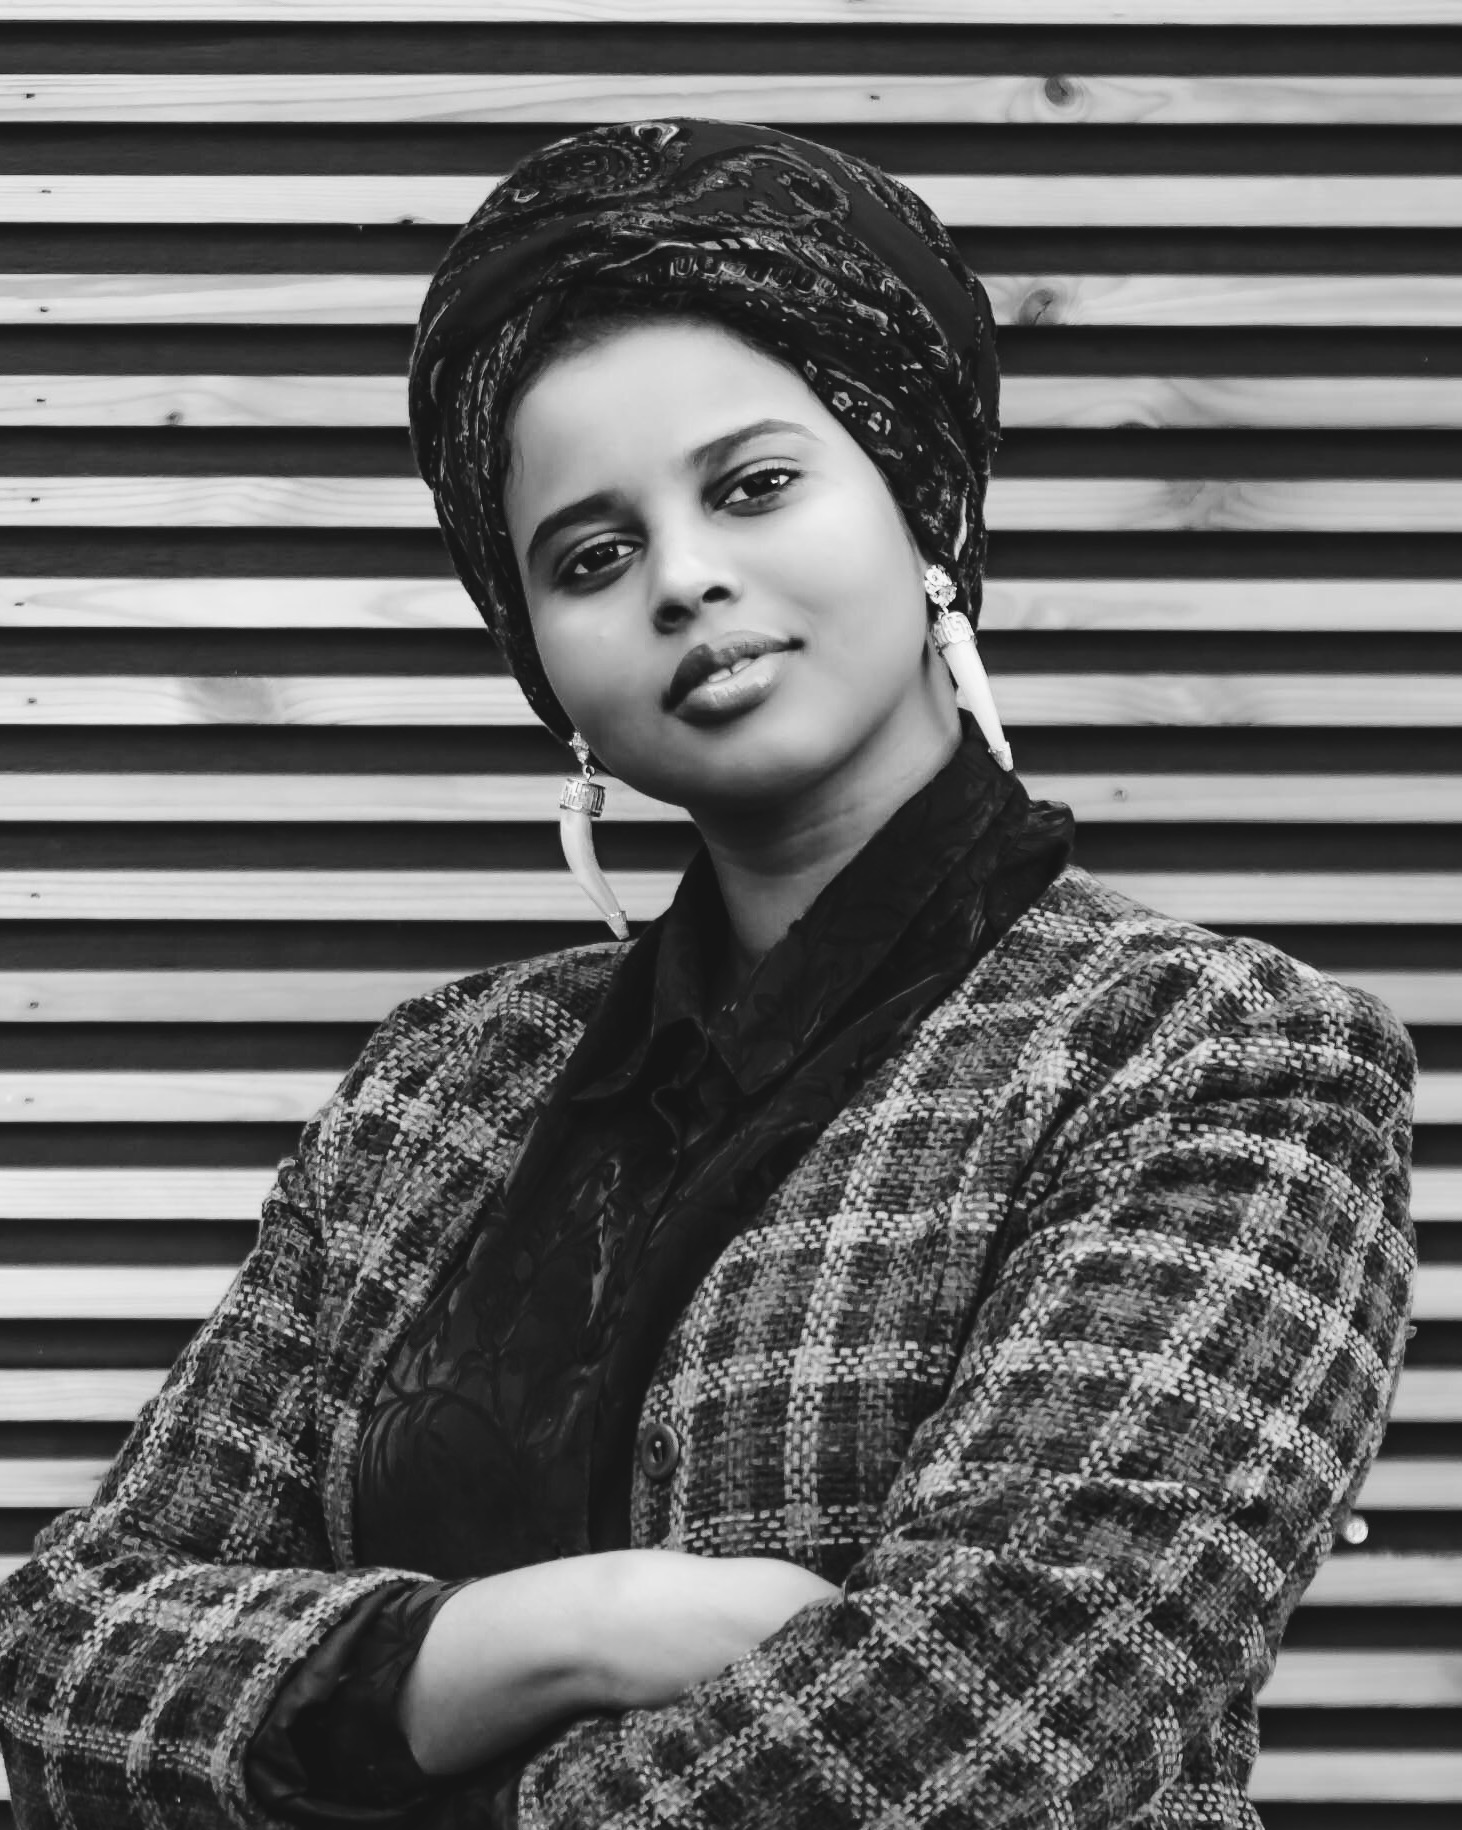 Momtaza Mehri  is a British-Somali poet, essayist and editor, and is the current Young People's Laureate for London. Her work has been featured in  Poetry Review ,  BuzzFeed , BBC Radio 4,  Vogue  and the San Francisco Museum of Modern Art's Open Space. She is a Complete Works Fellow, and winner of the 2017 Out-Spoken Page Poetry Prize and the 2018 Brunel African Poetry Prize.  Her chapbook  sugah.lump.prayer  was published as part of the New Generation African Poets series. Her poems also feature in  Ten: Poets of the New Generation , published by Bloodaxe Books in 2017. Momtaza Mehri's participation is made possible with the assistance of Words Go Round, an outreach programme of Singapore Writers Festival. (Photo credit: Lee Townsend, for Spread the Word)